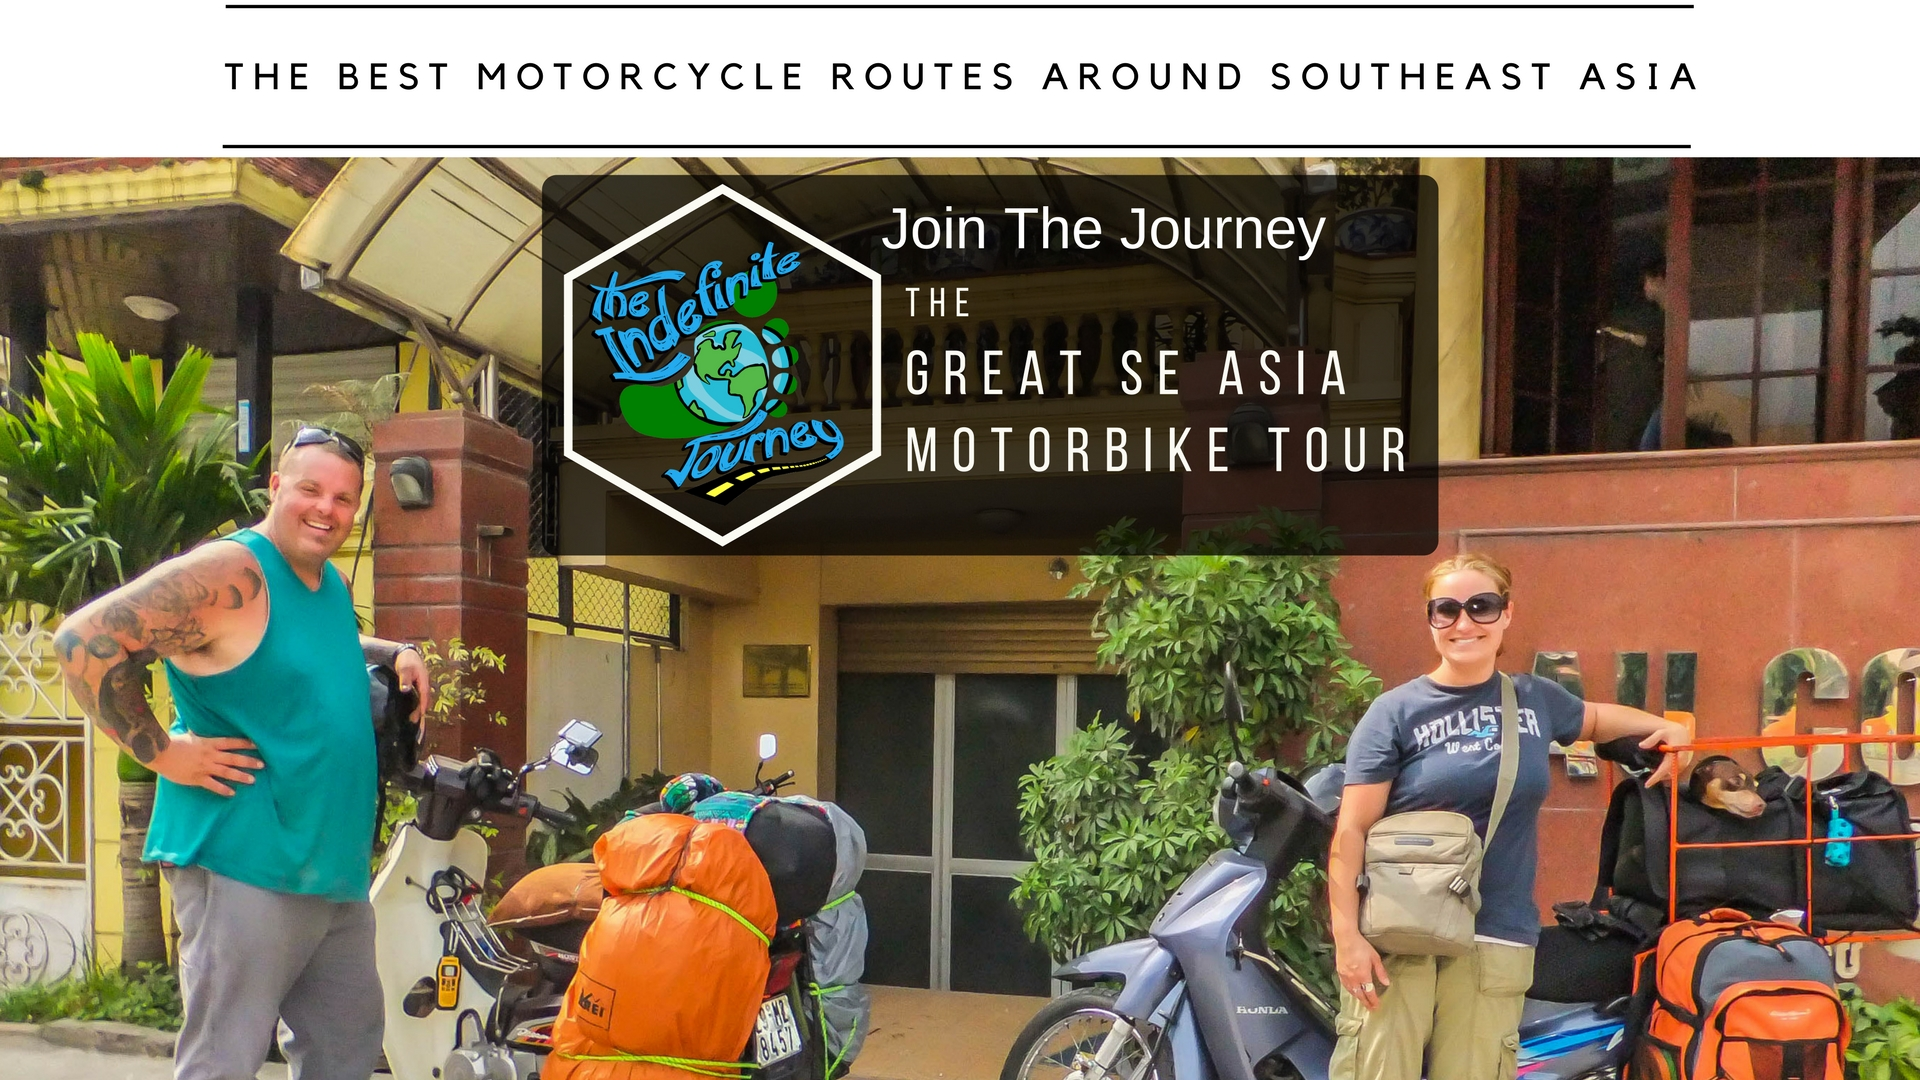 The Great SE Asia Motorbike Tour -Best Motorcycle Routes Around Southeast Asia